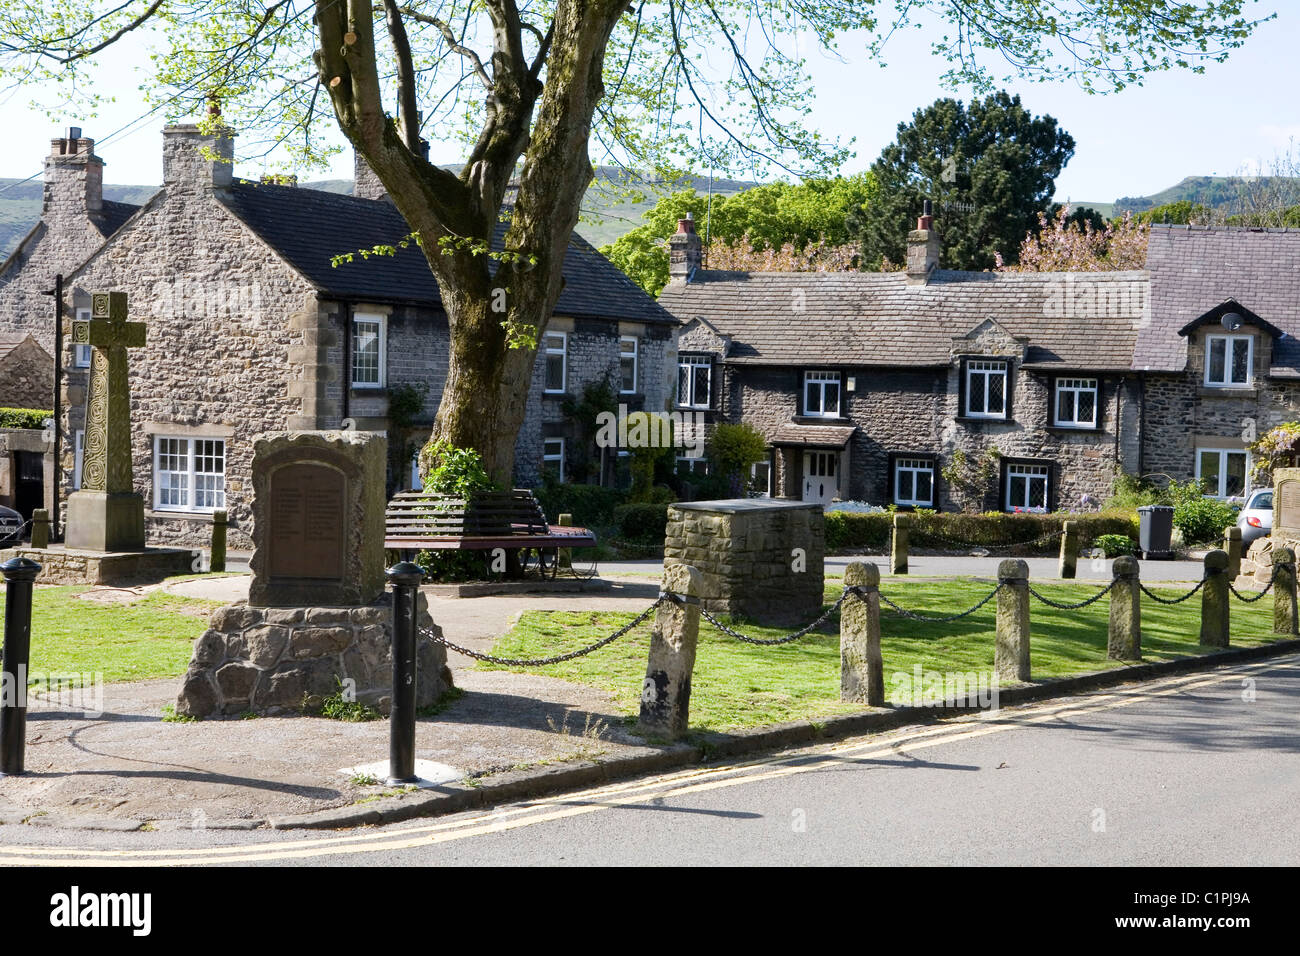 England, Derbyshire, Castleton, houses overlooking market square in village Stock Photo